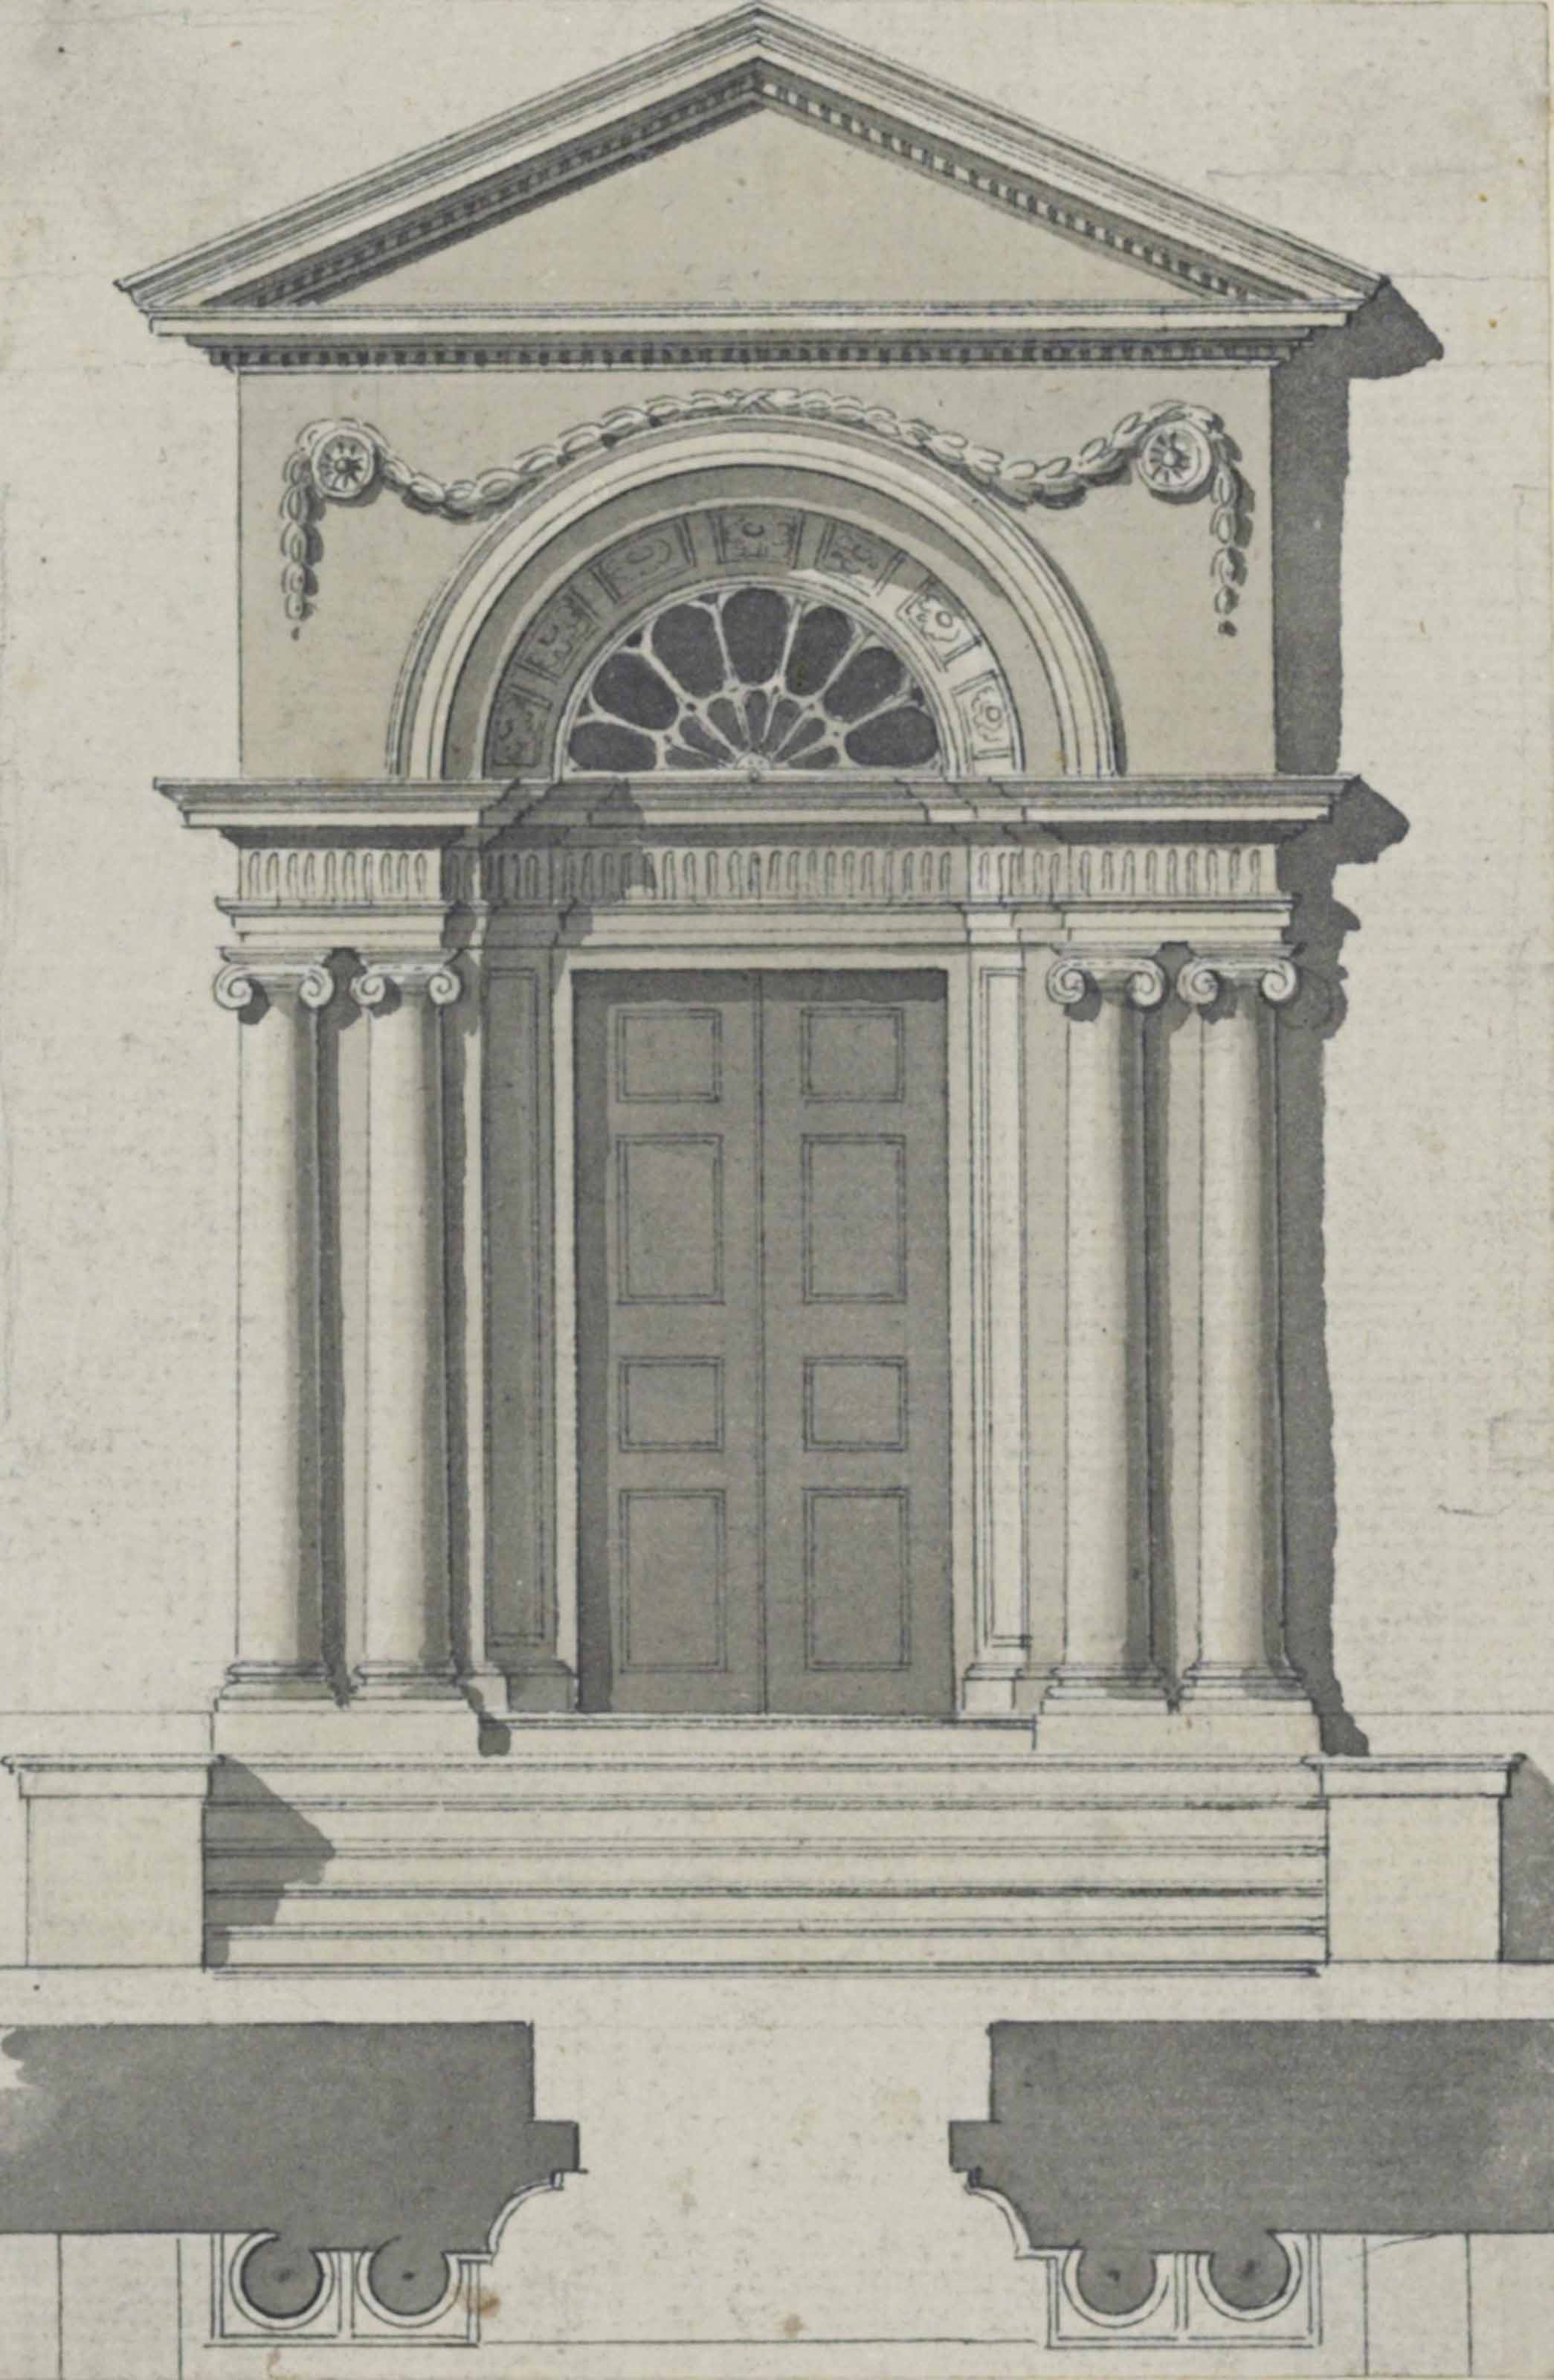 Design for a neo-classical entrance and doorway with subsidiary plans of the supporting Ionic columns